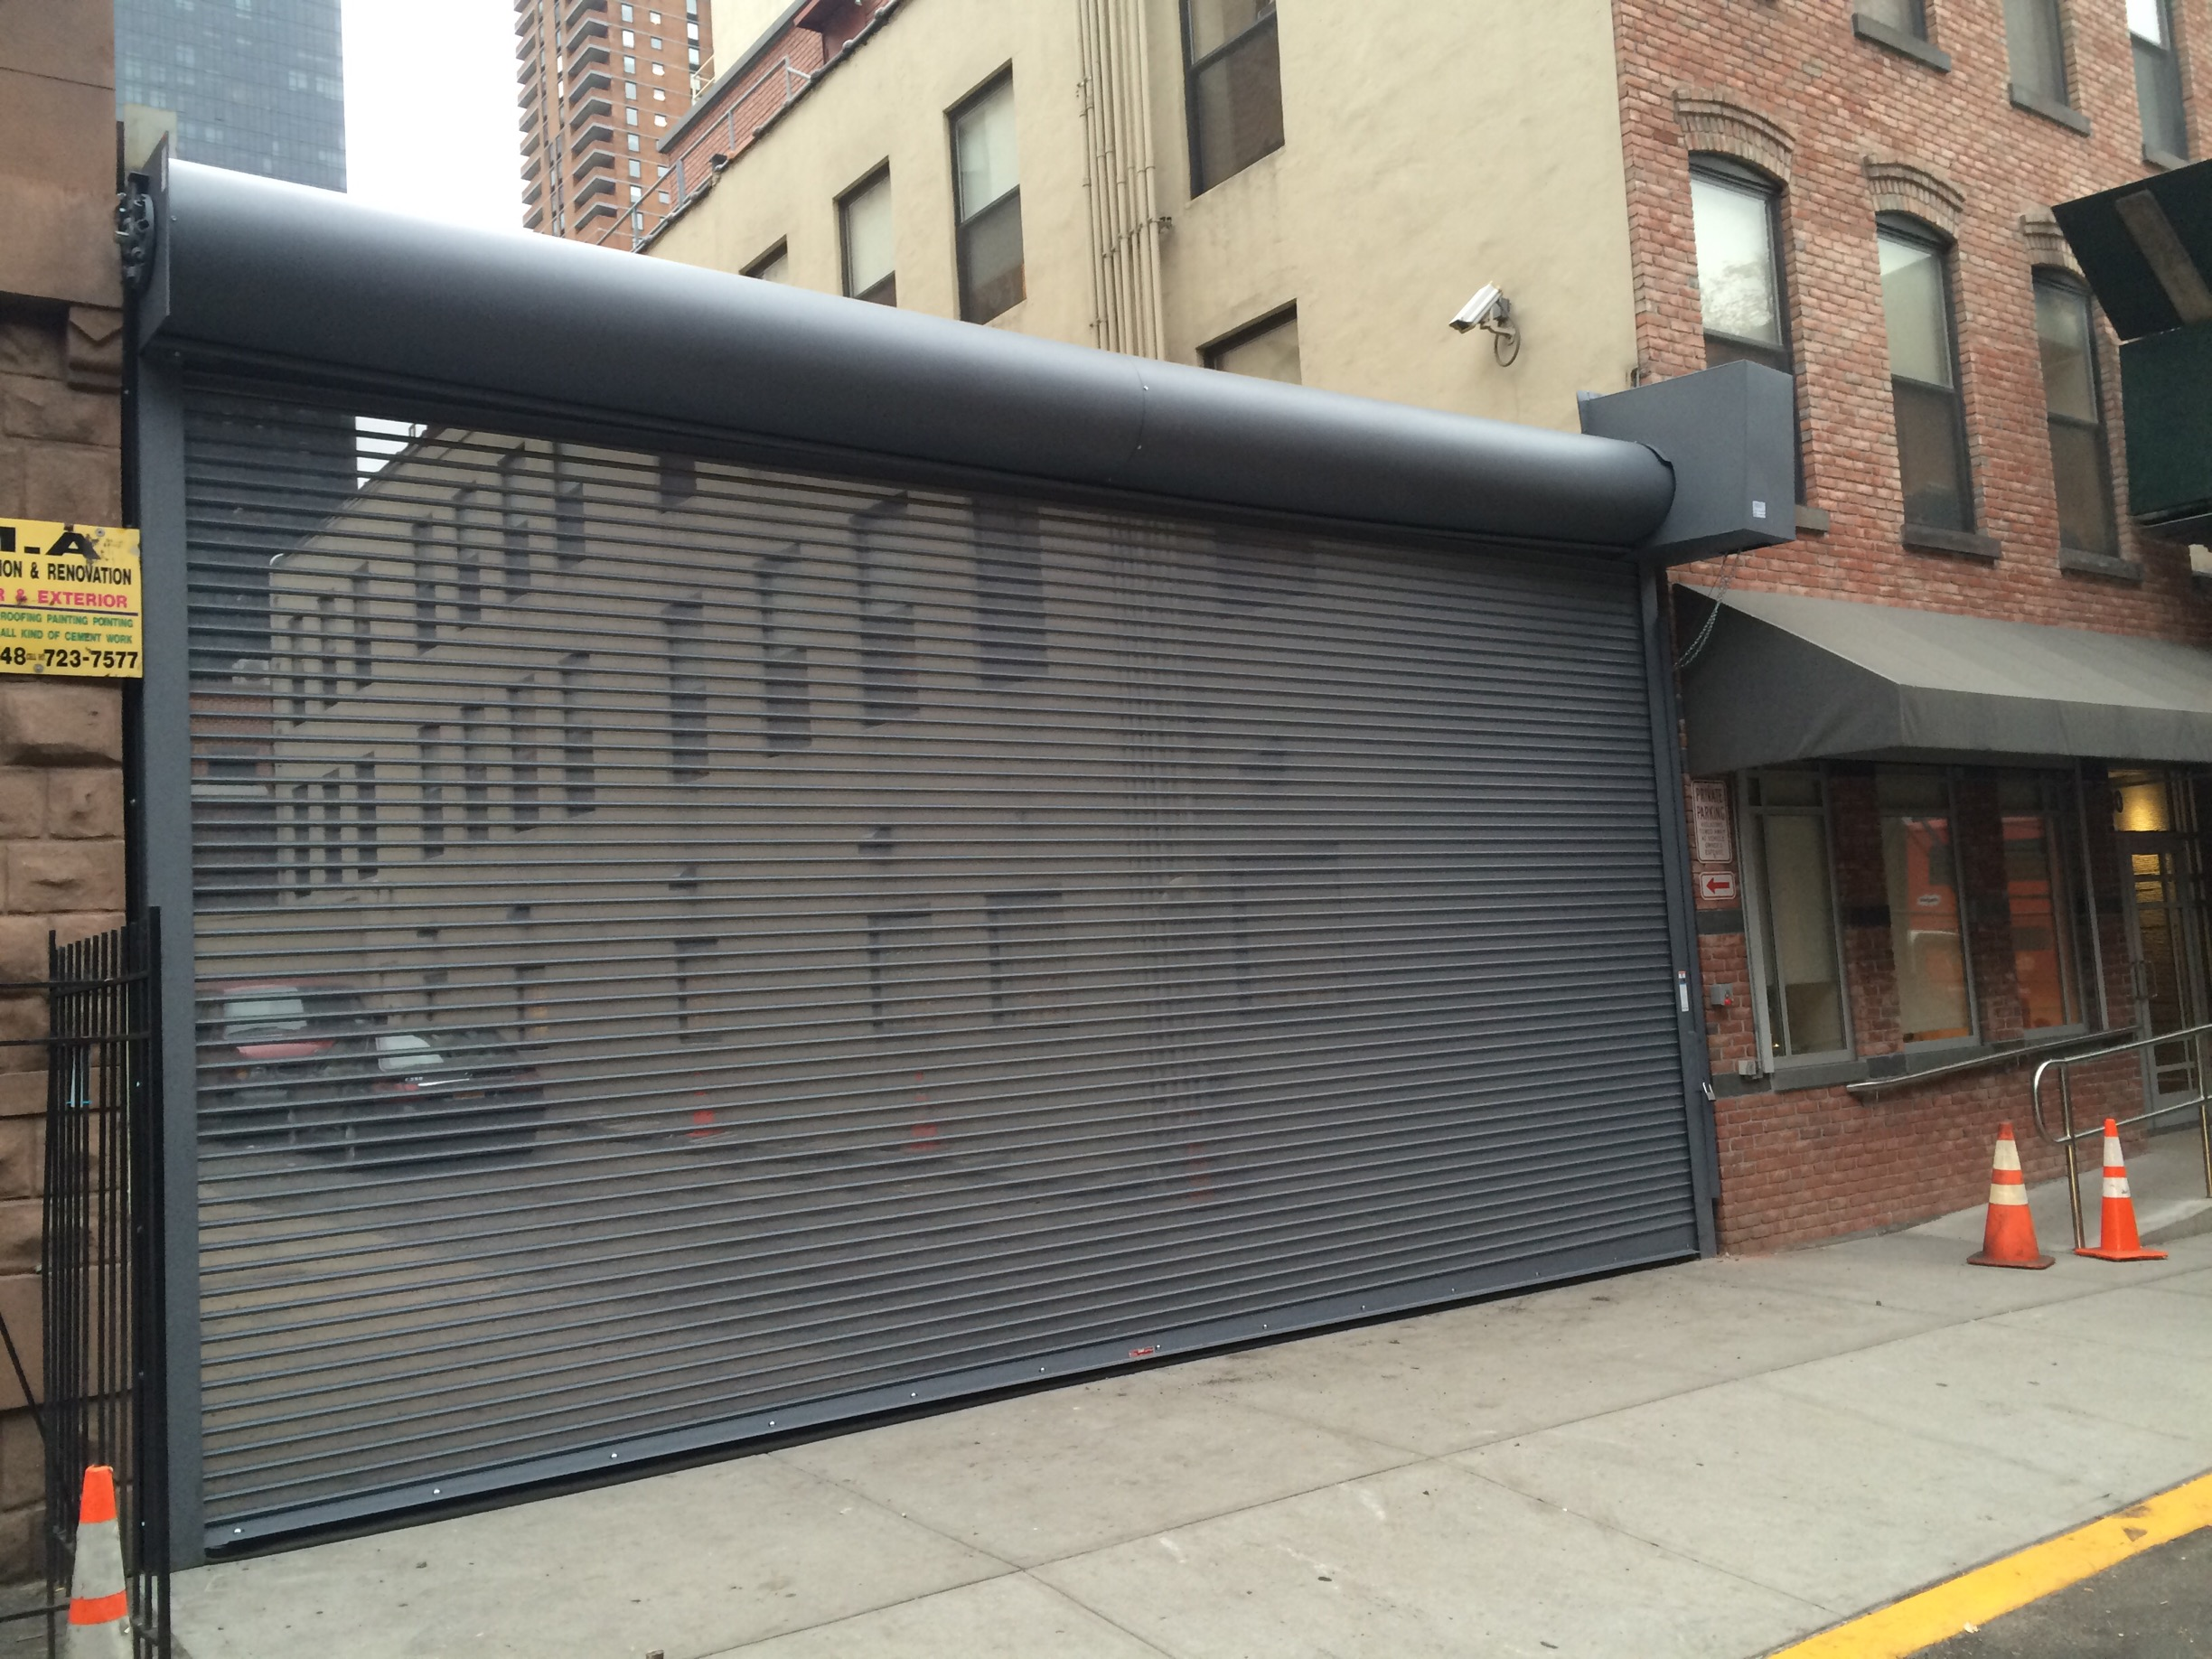 repair mesh perforated punched hole open air visibility rolling door shutter new york city new jersey & Motorized Metal Roll-Up Shutters and Rapid Overhead Roll-Up Doors